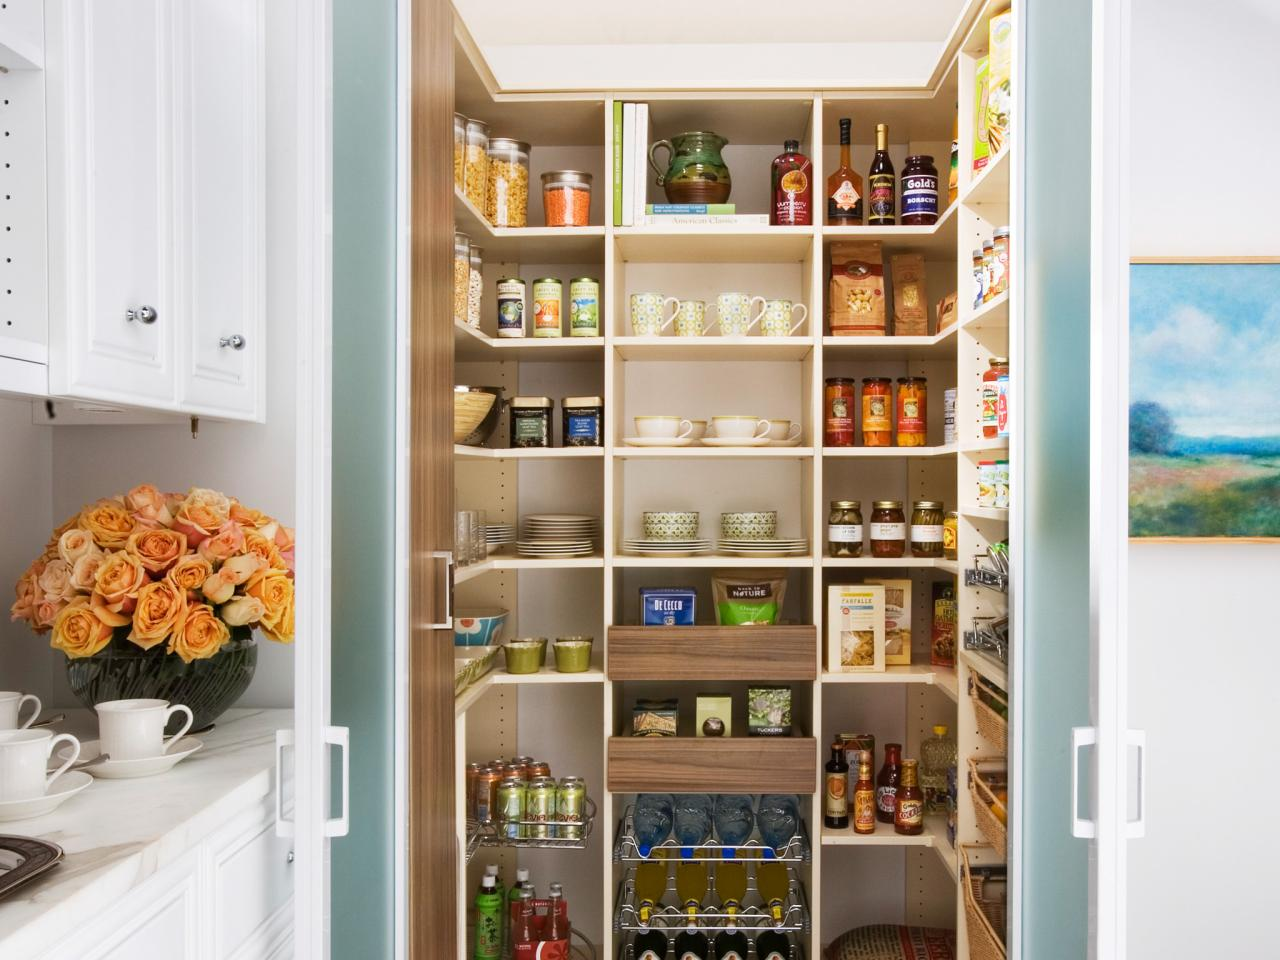 Moving Hacks That You Never Thought Of. The pantry full of canned food and other products